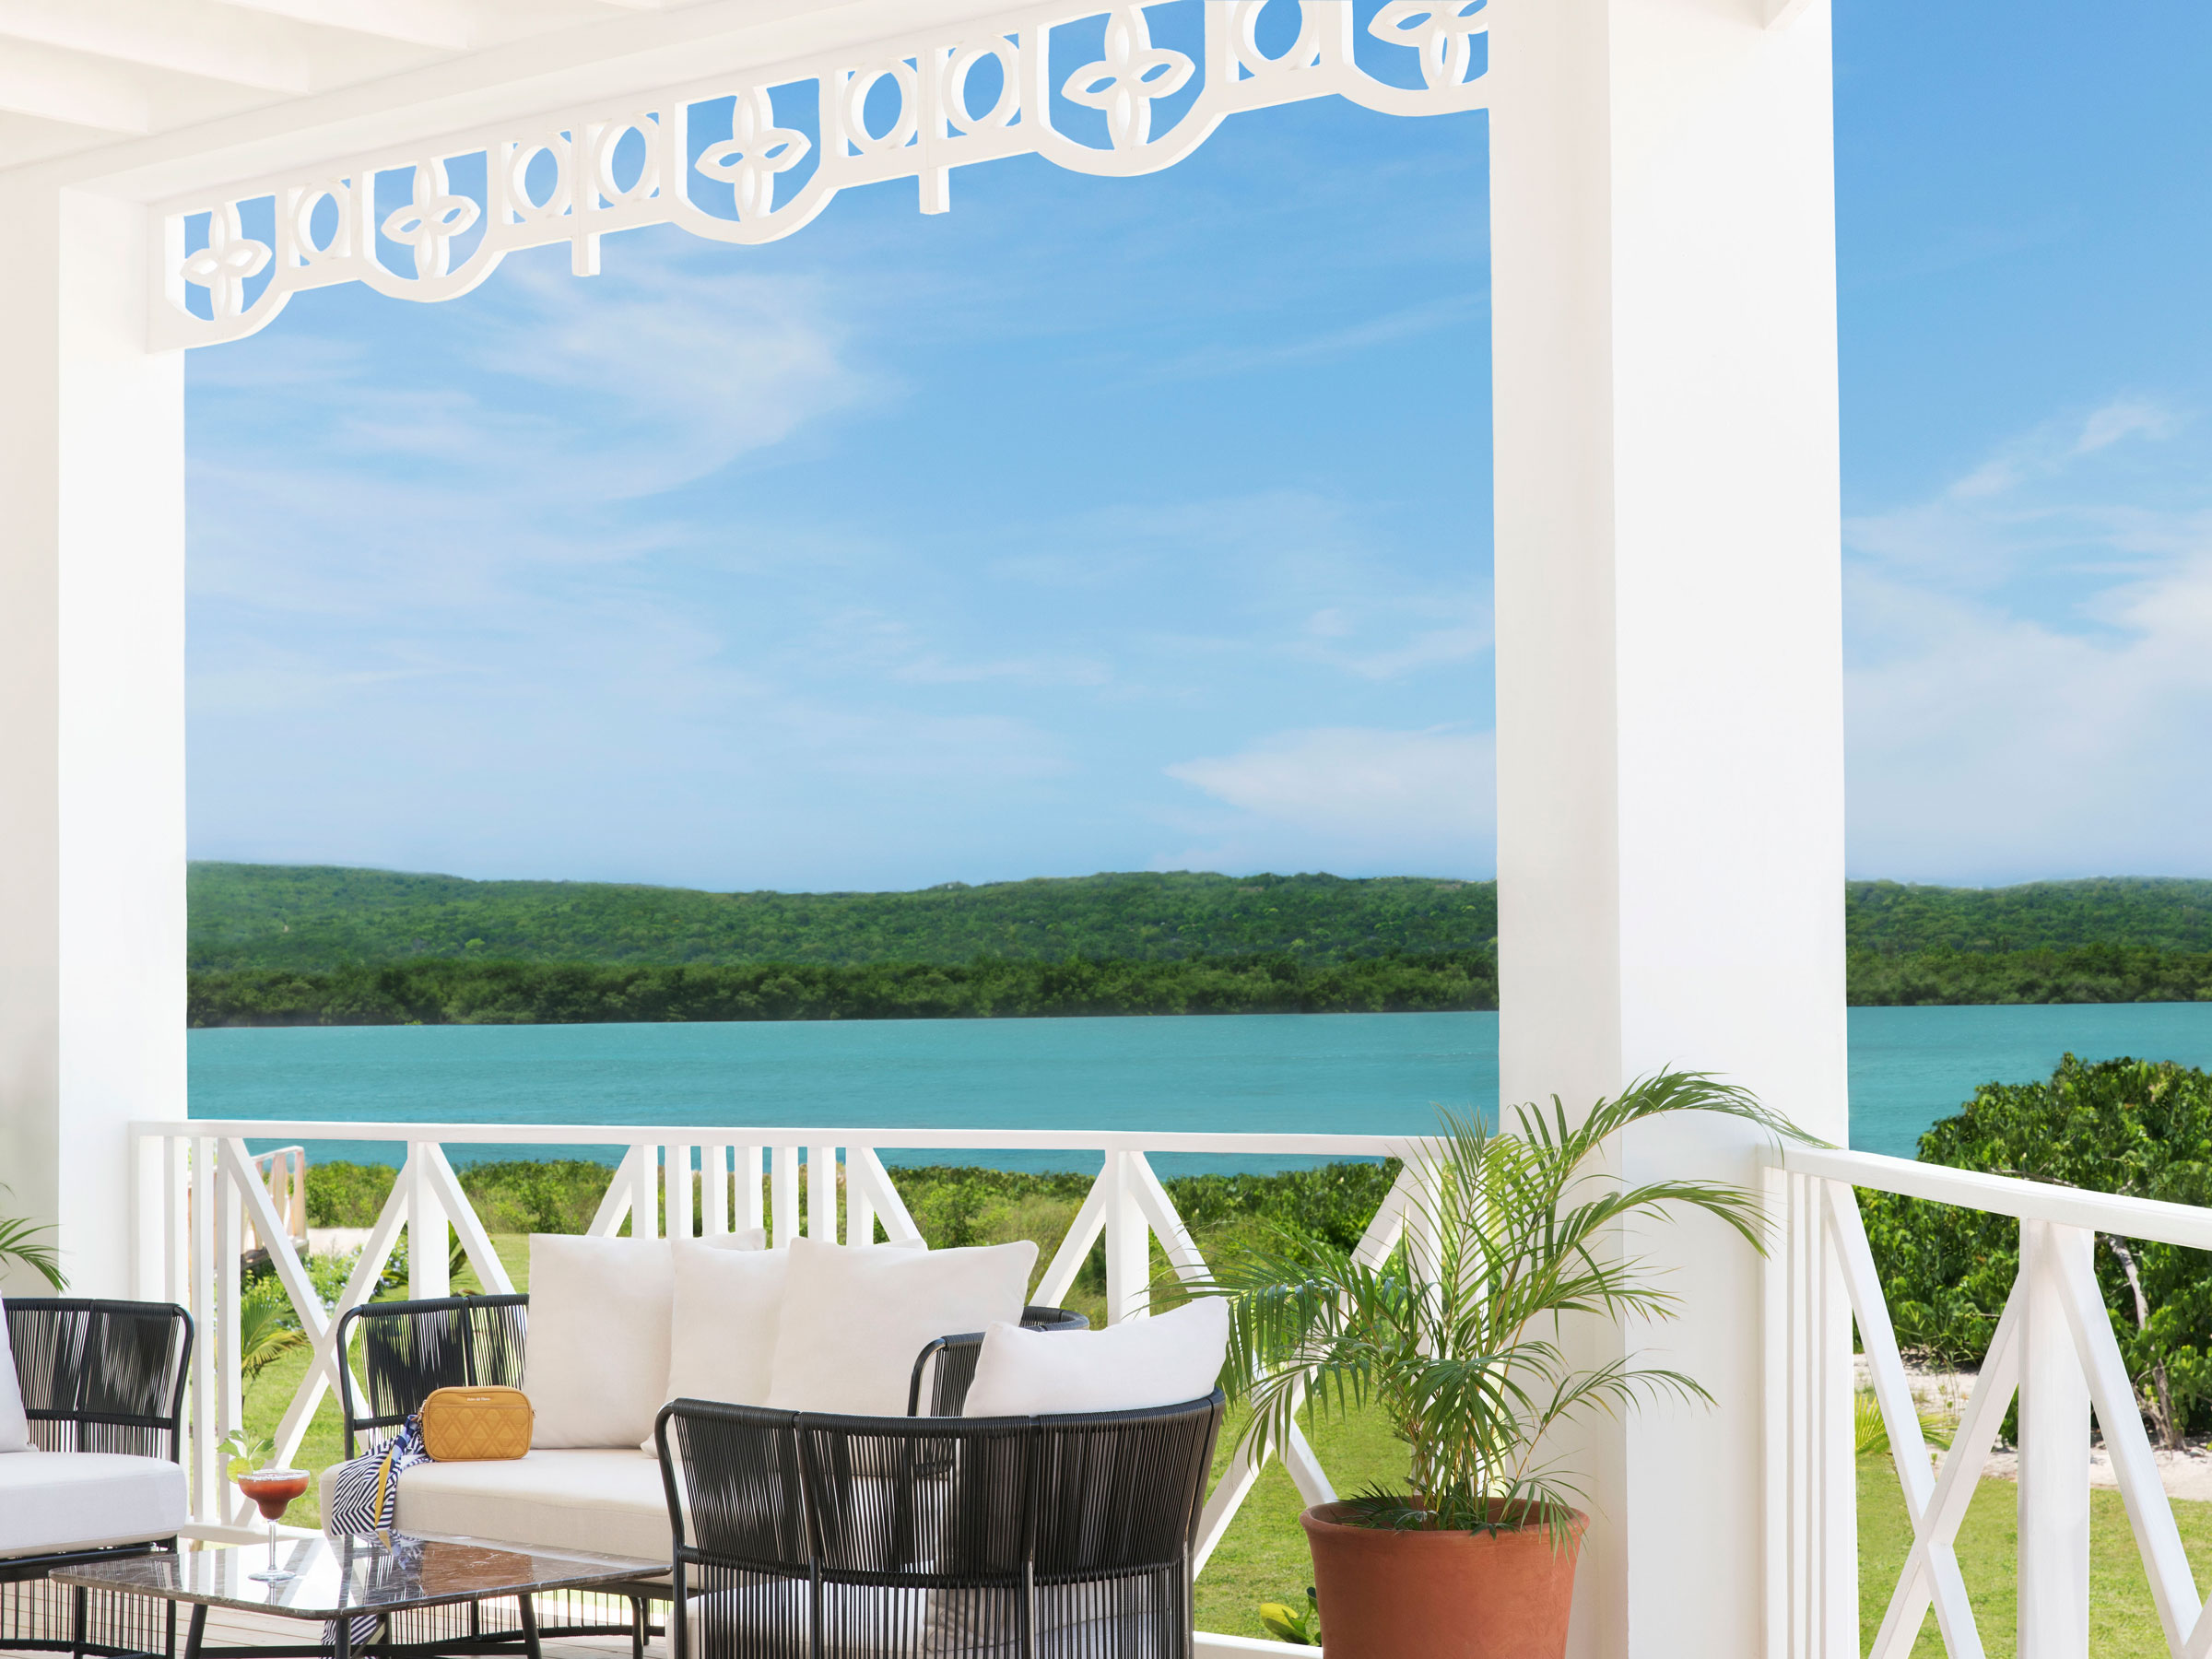 Exclusive Club Bars in Jamaica Luxury Hotels